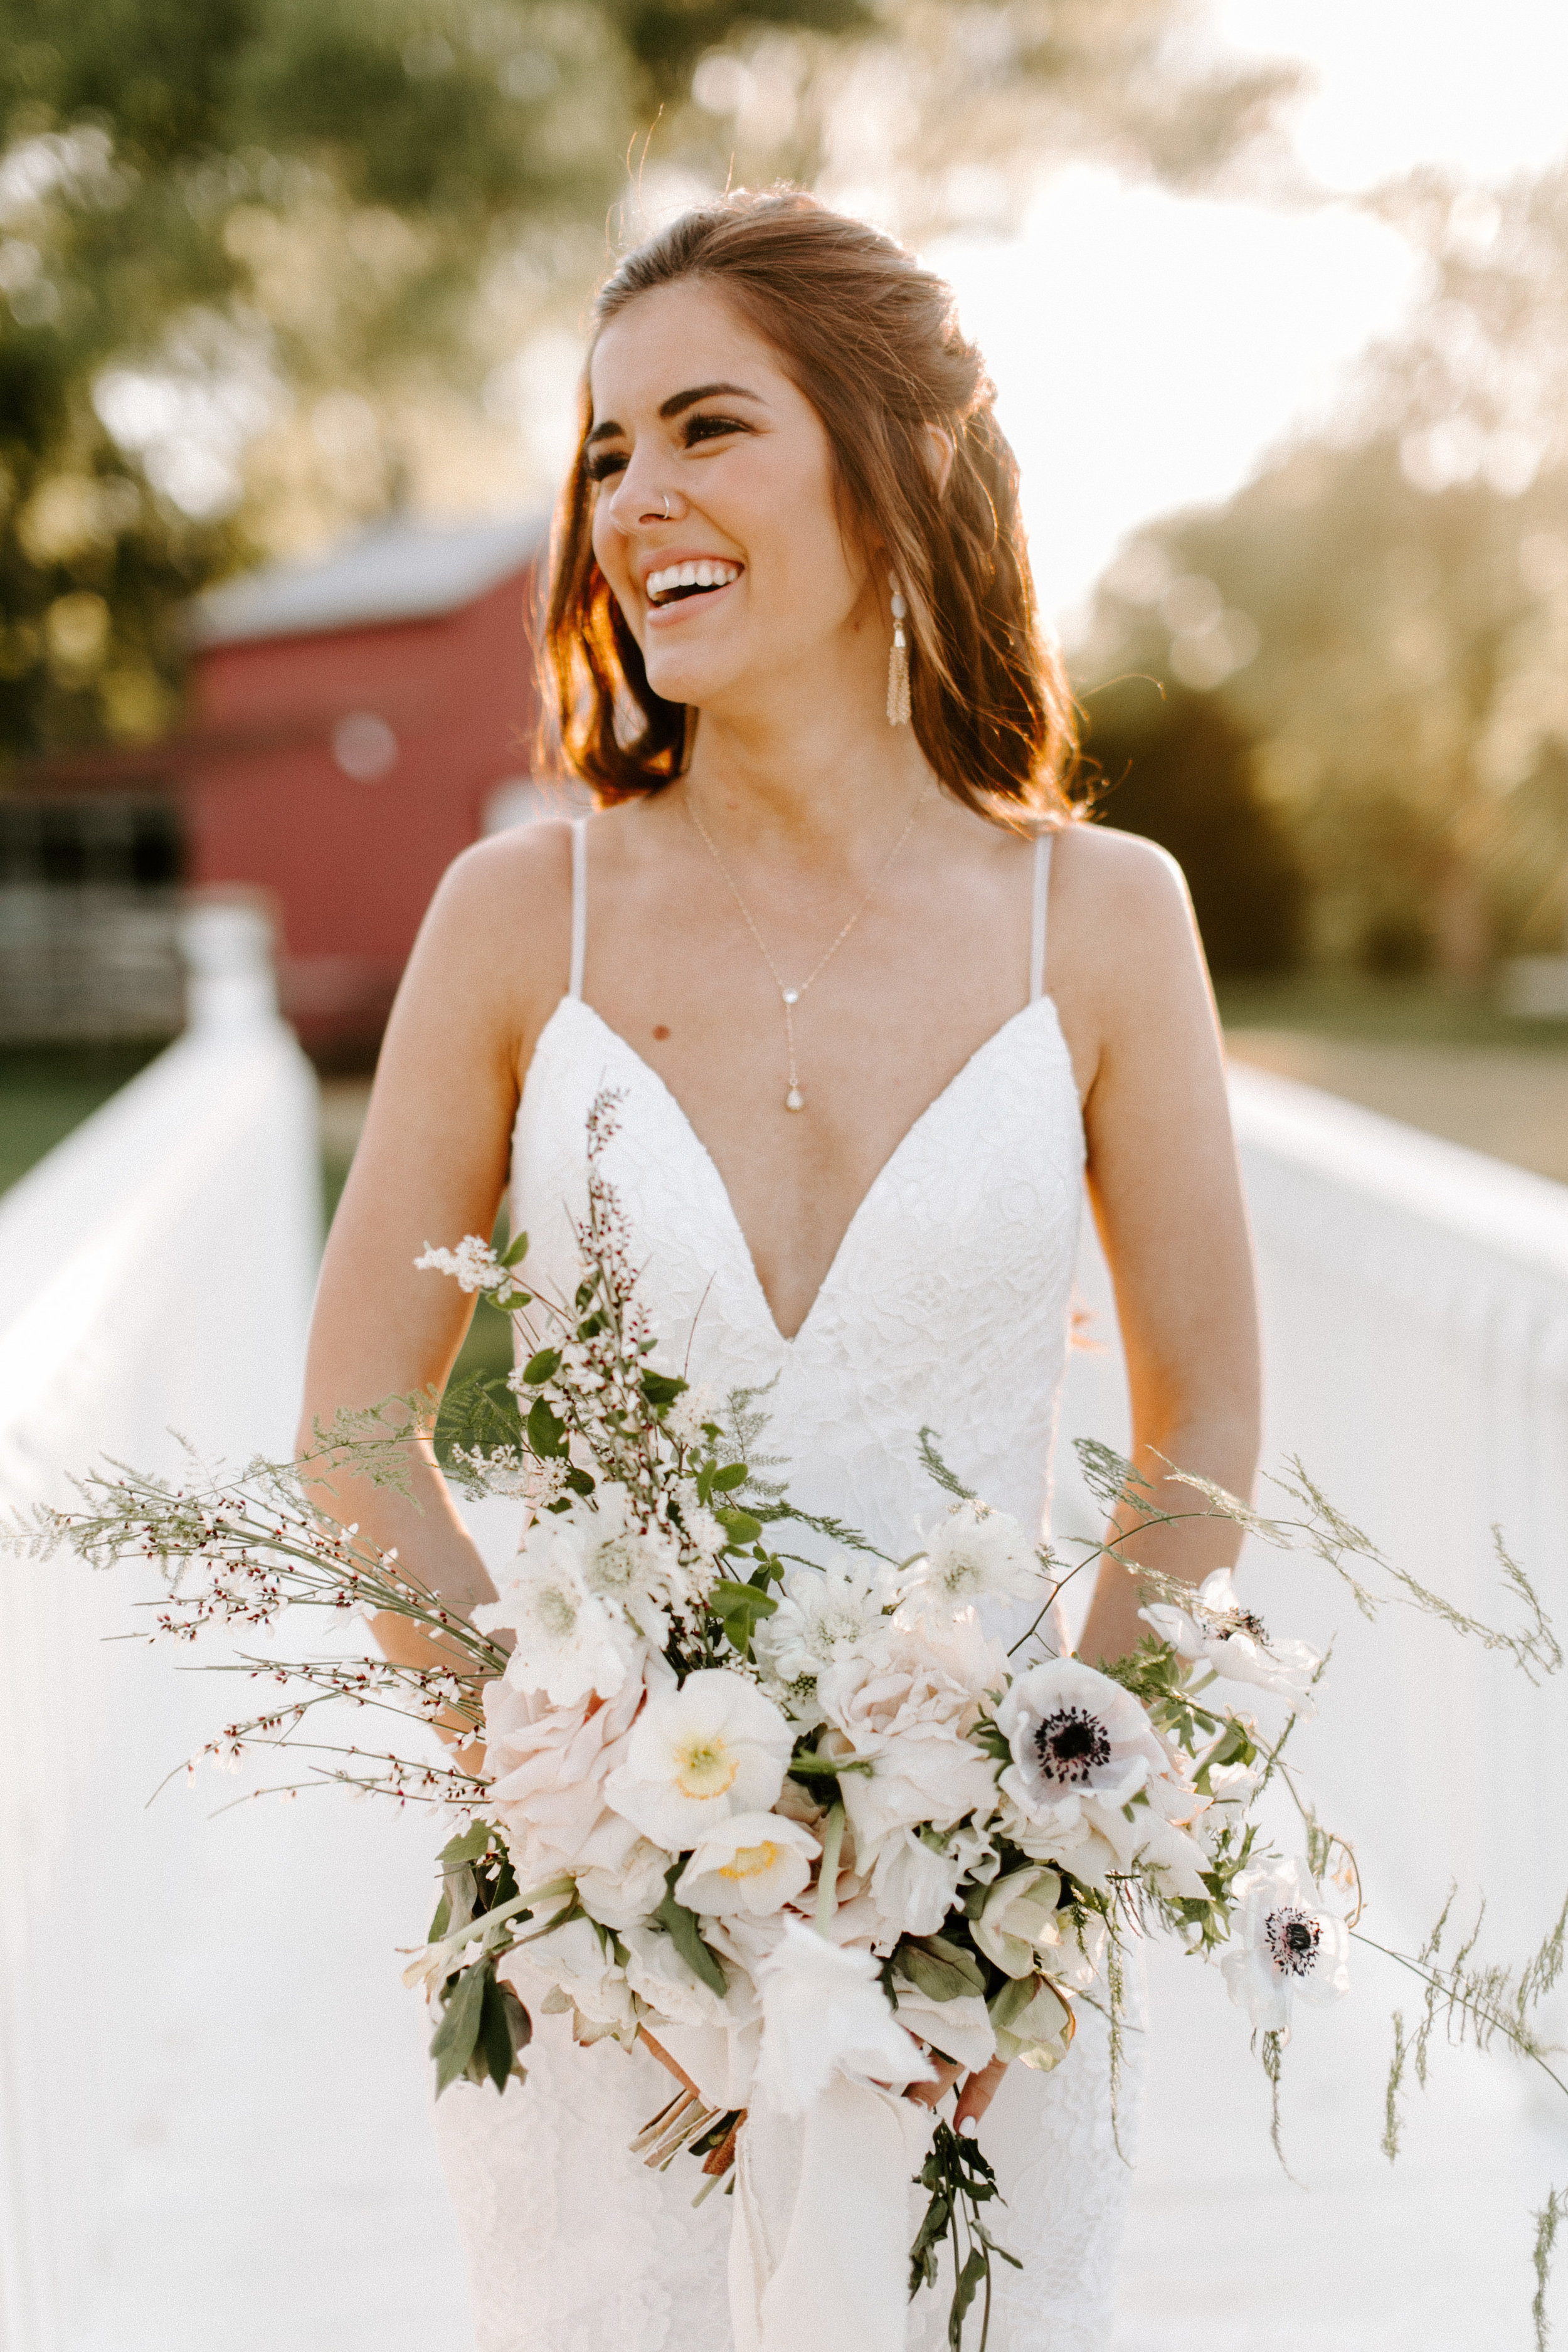 A Romantic Wedding in the Firefly Gardens - Featuring:Photography: Local EmbersHAMU: Well Beyond BeautyDress: A & Be BridalVenue: Firefly Gardens